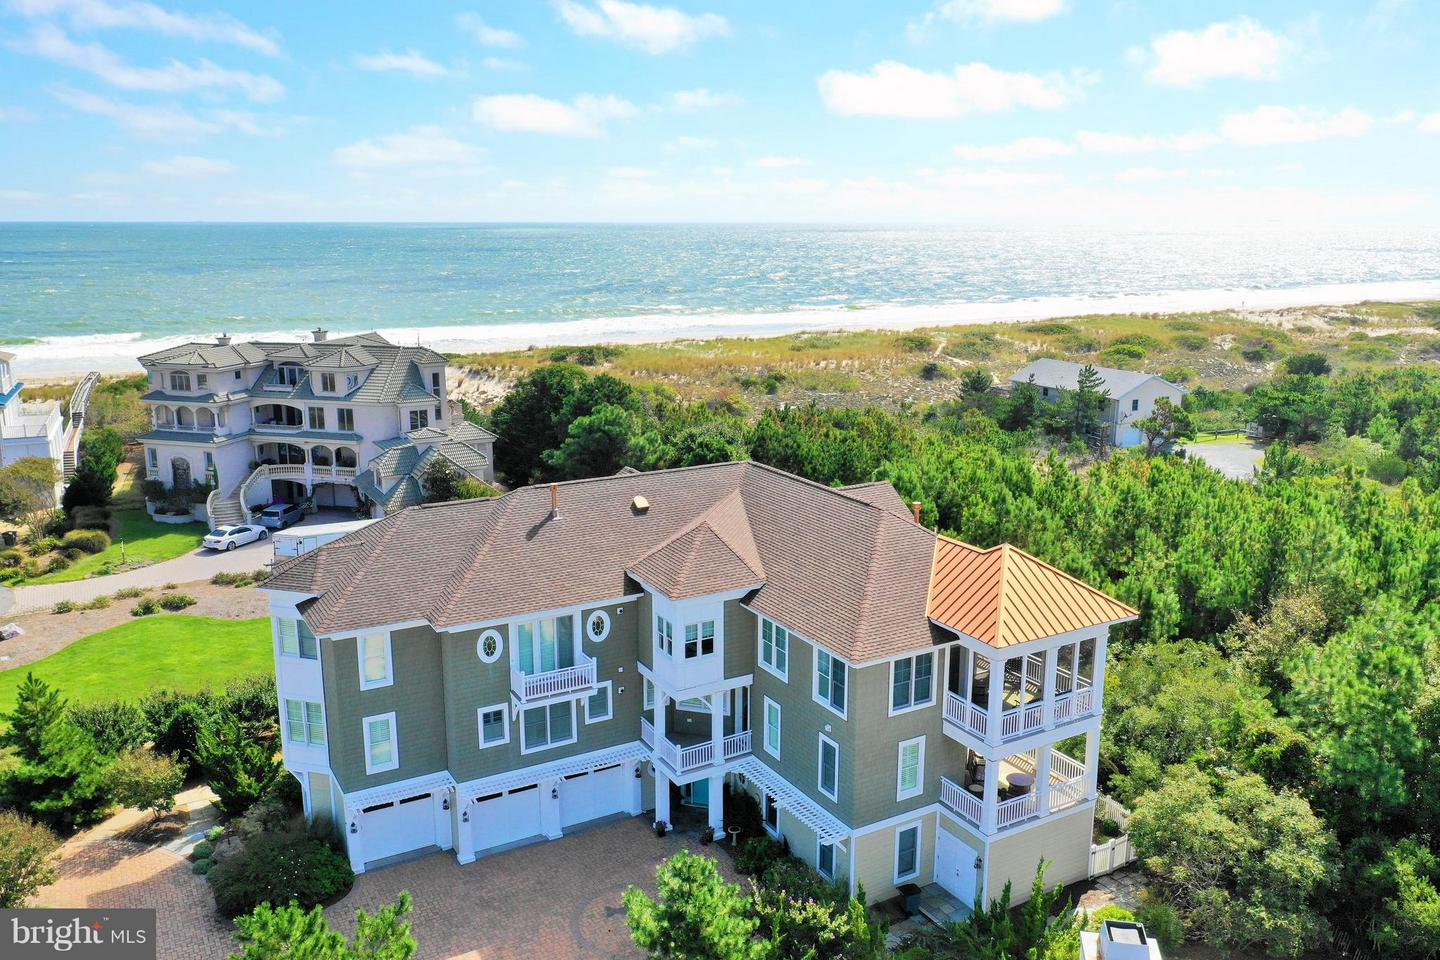 1002293530-300720130270-2018-09-25-15-08-25 31 Hall Ave | Rehoboth Beach, DE Real Estate For Sale | MLS# 1002293530  - Jack Lingo REALTOR